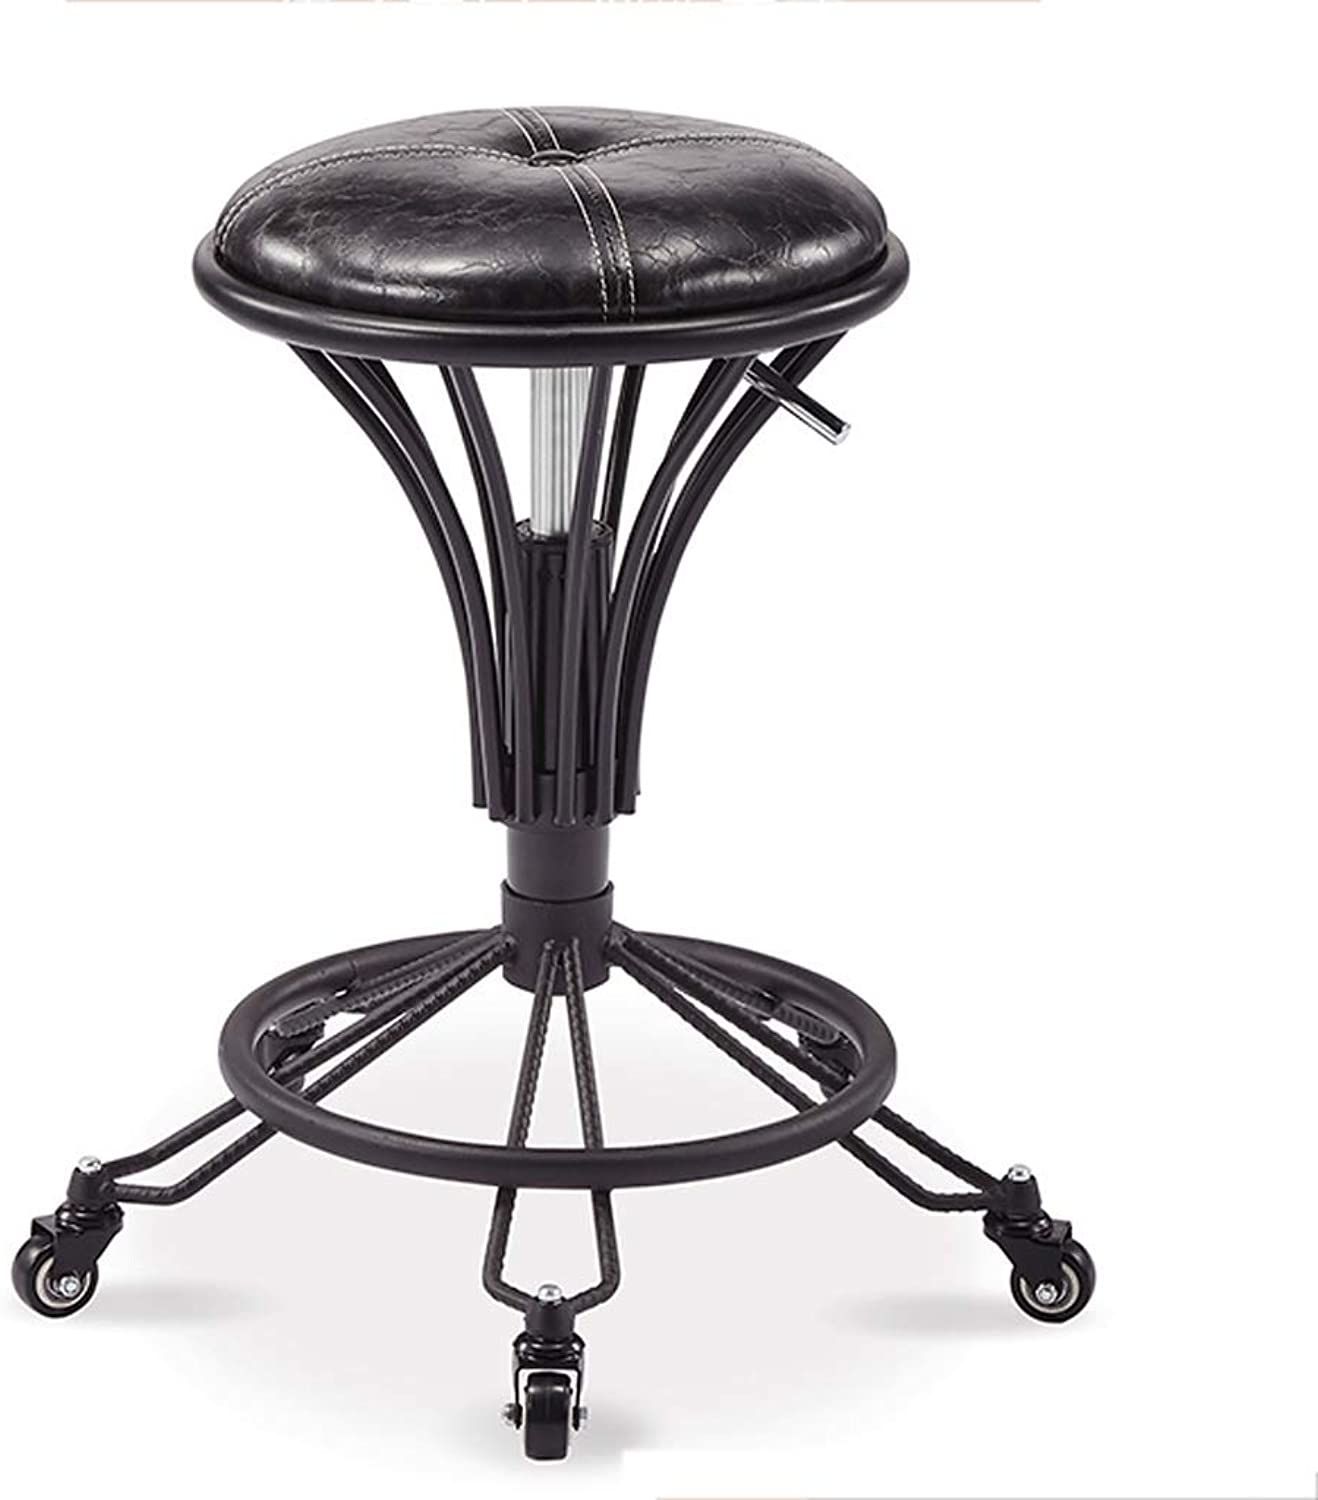 Beauty Stool Barber Shop Chair Hairdressing Stool redating Lifting Round Stool Work Bench Nail Salon Stool Pulley (color   Black)